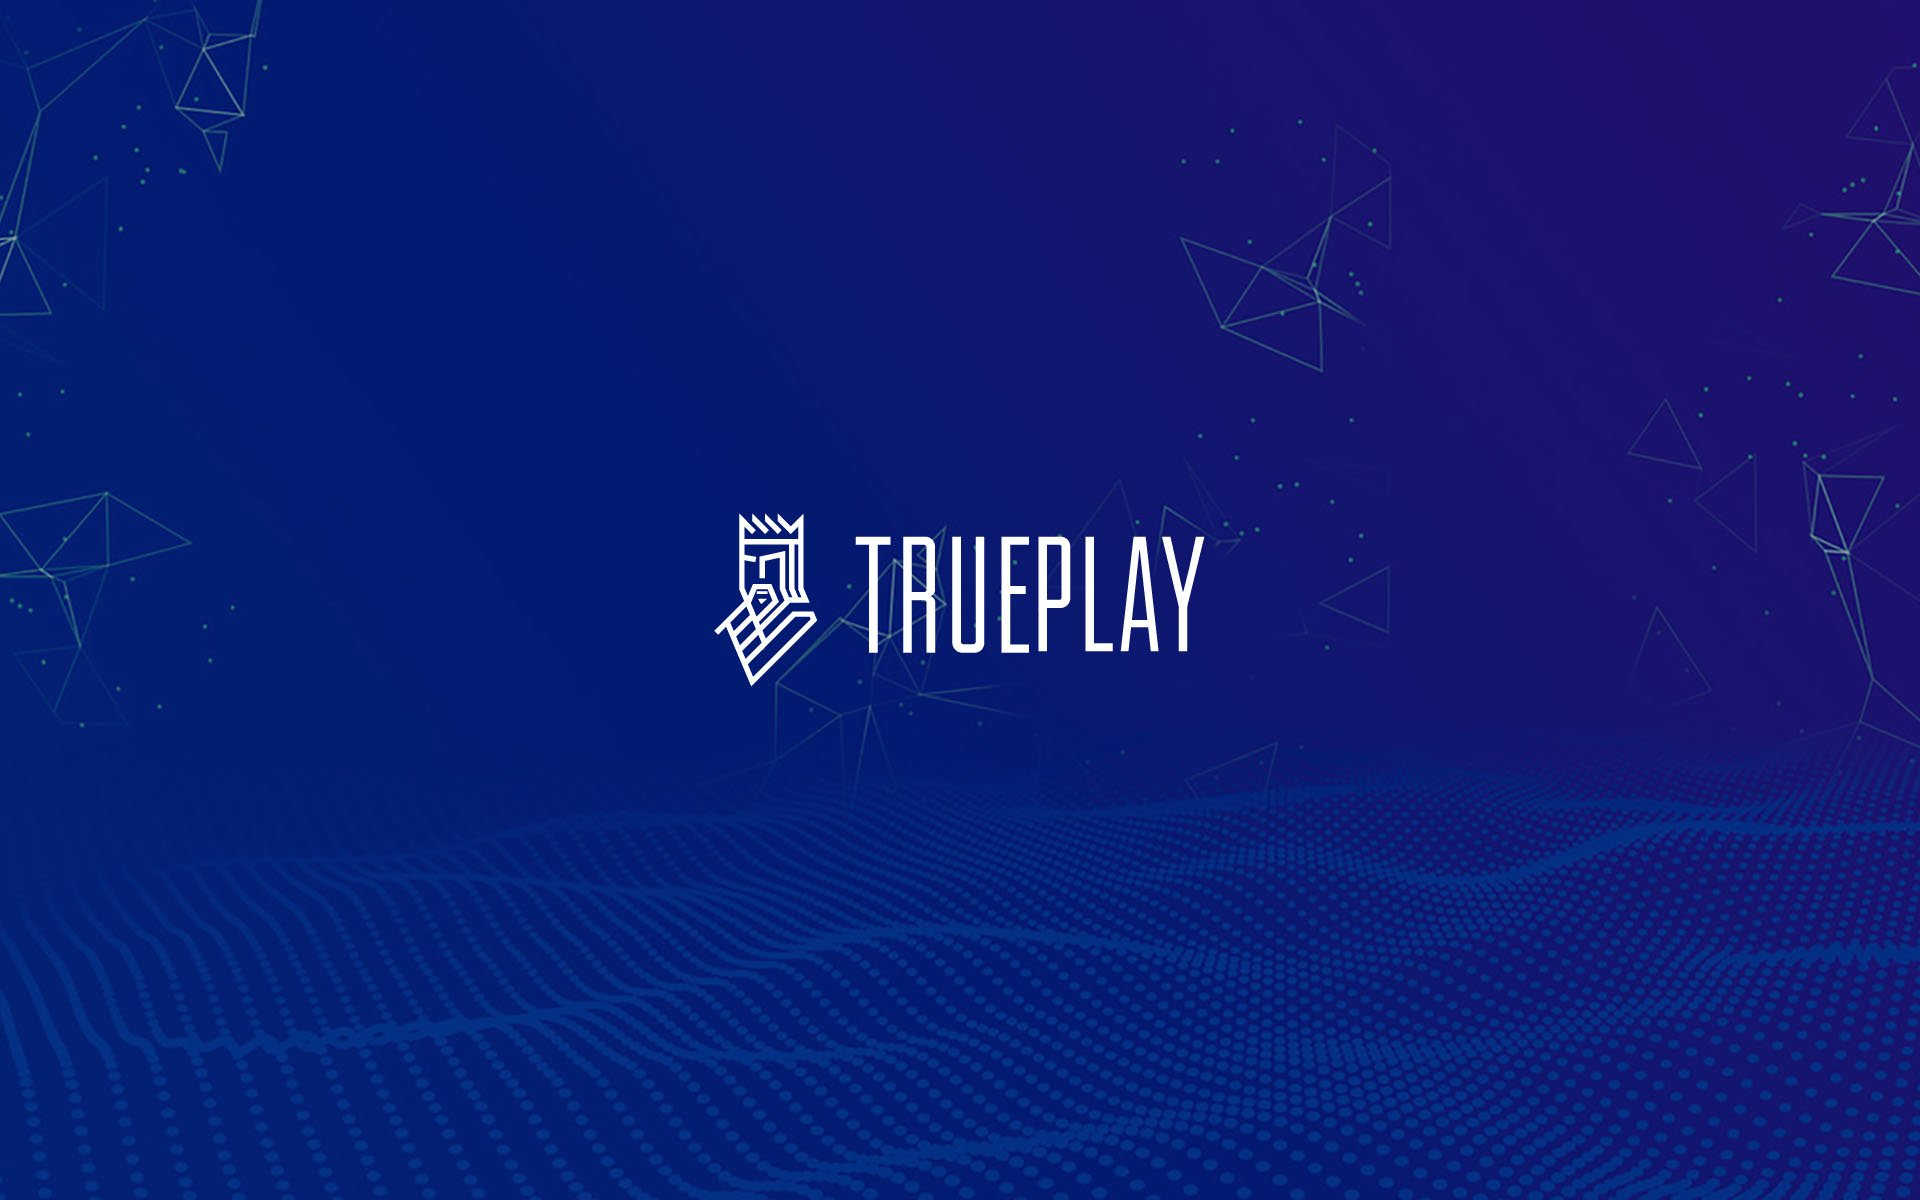 TruePlay Partners with Online Gaming Industry's Top Players